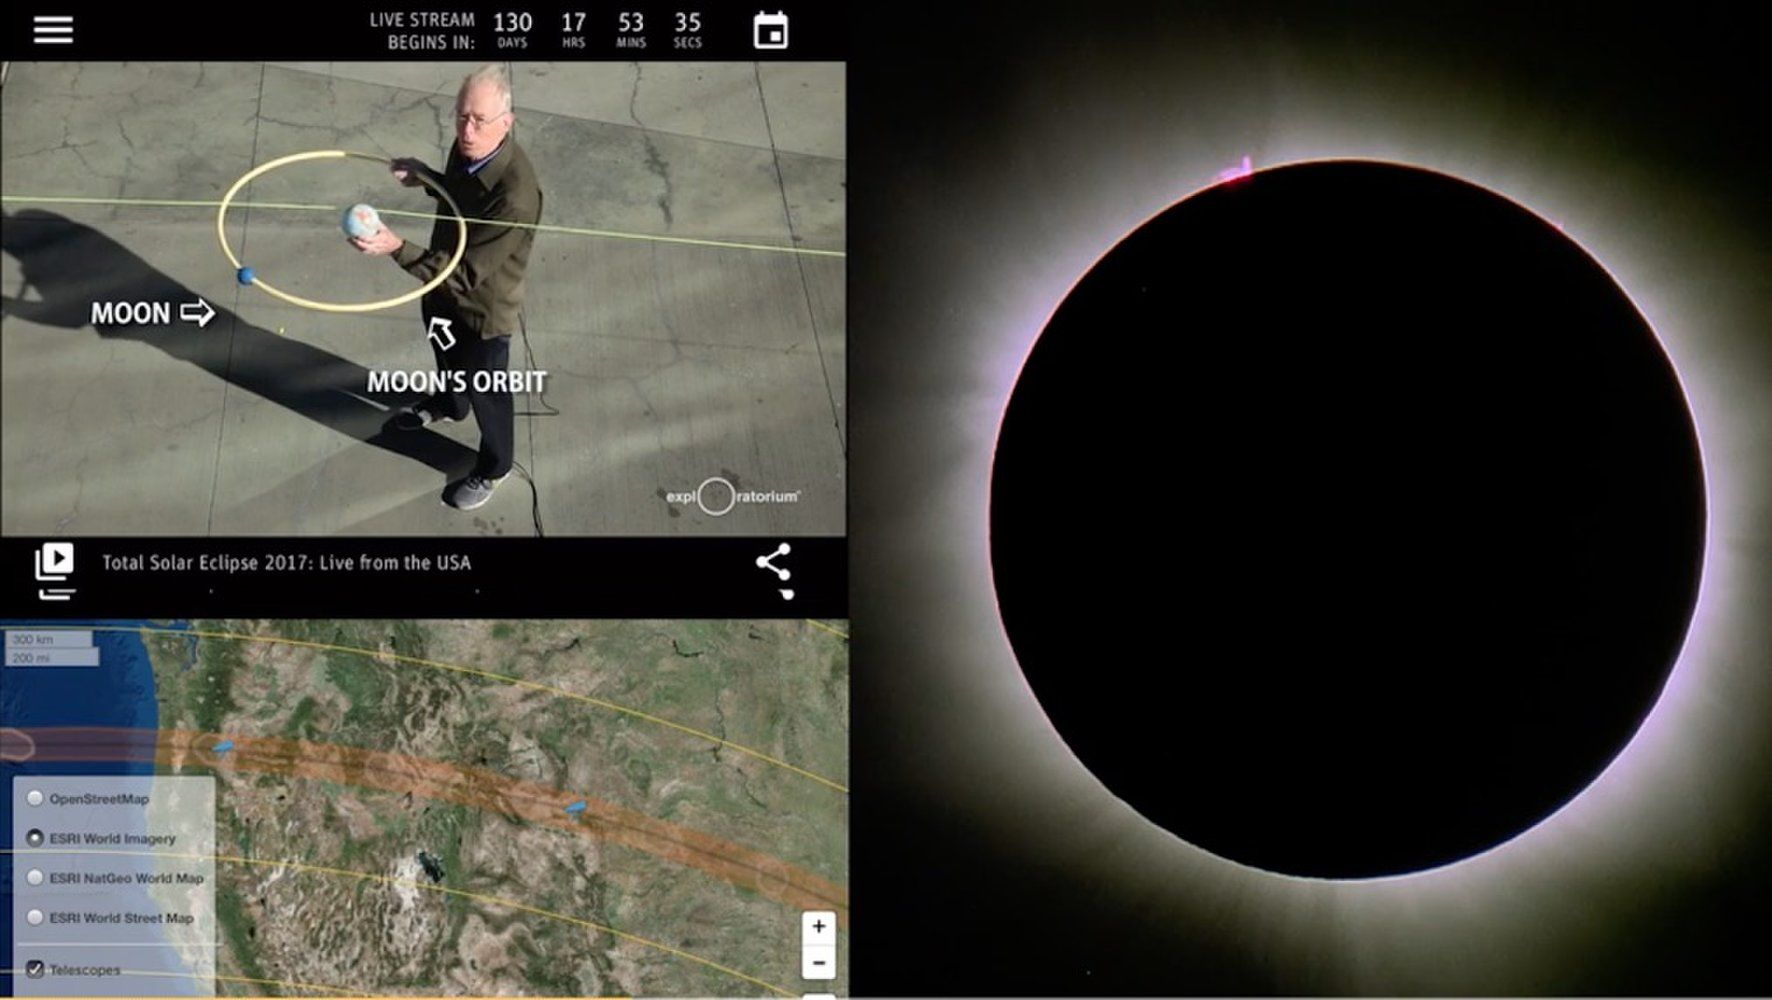 New Mobile App from Exploratorium Museum Explores Solar Eclipse